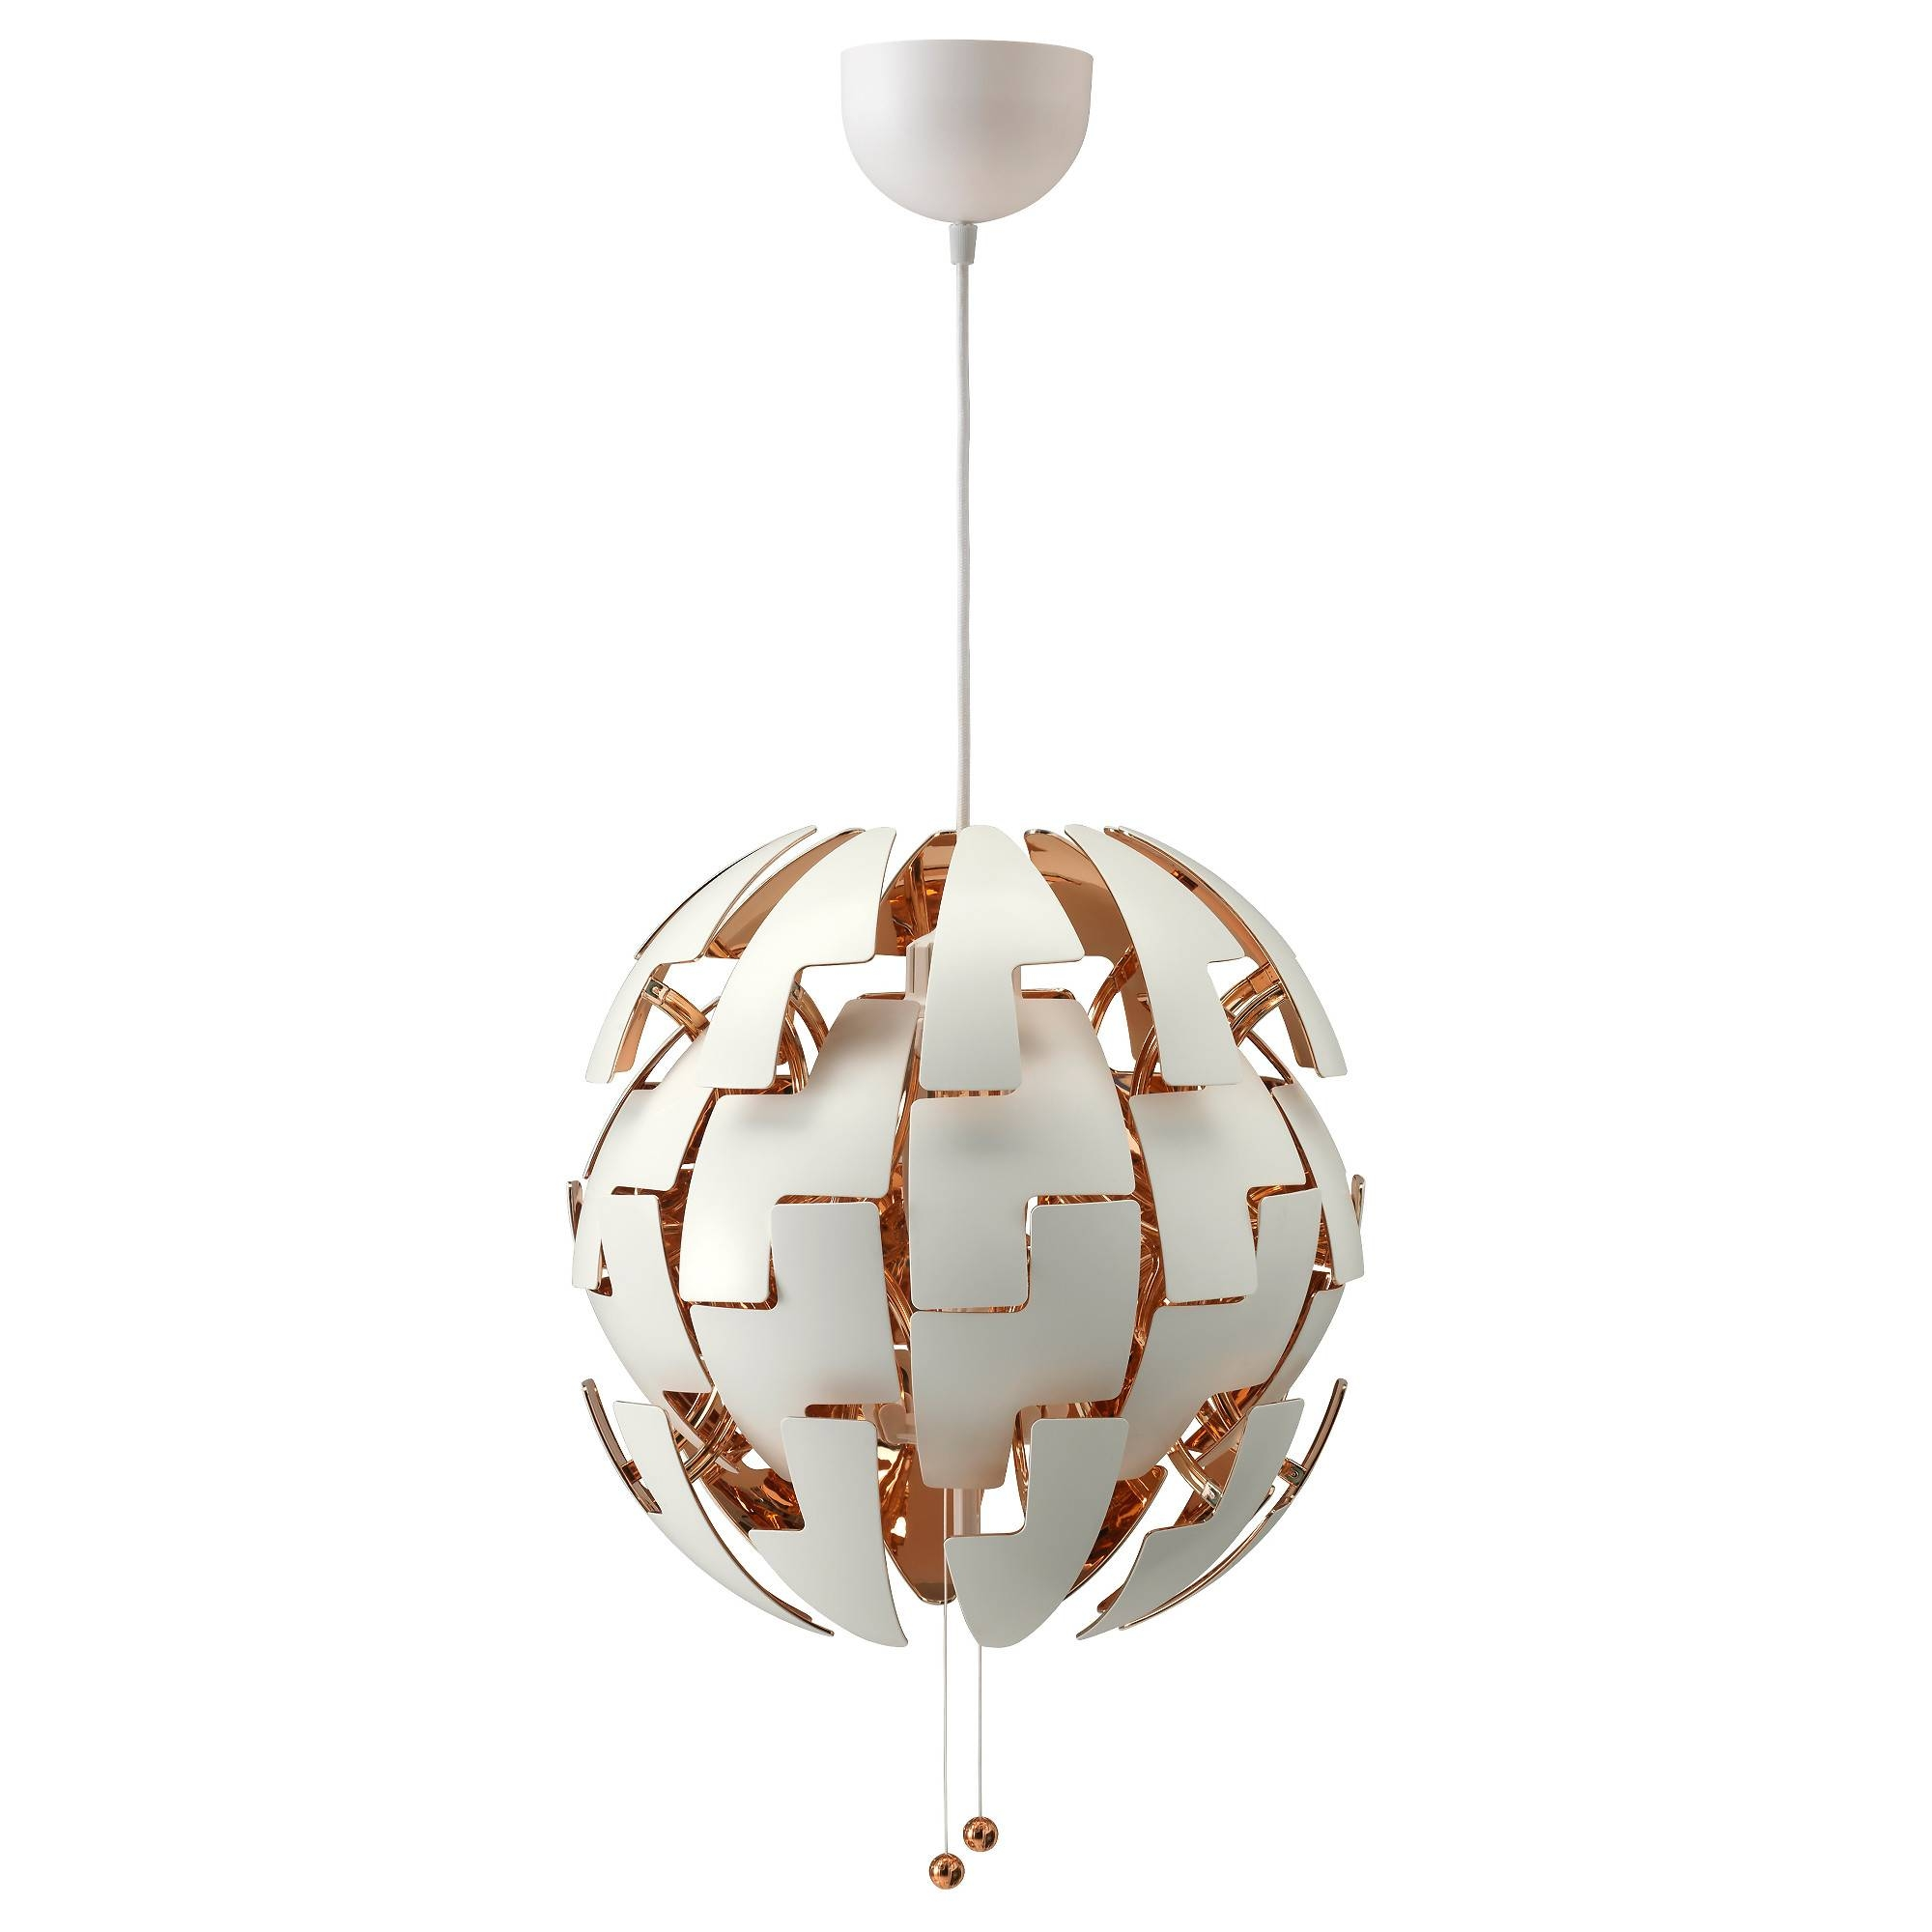 Ikea Ps 2014 Pendant Lamp - White/copper Color - Ikea with regard to Ikea Pendant Lights Fixtures (Image 8 of 15)